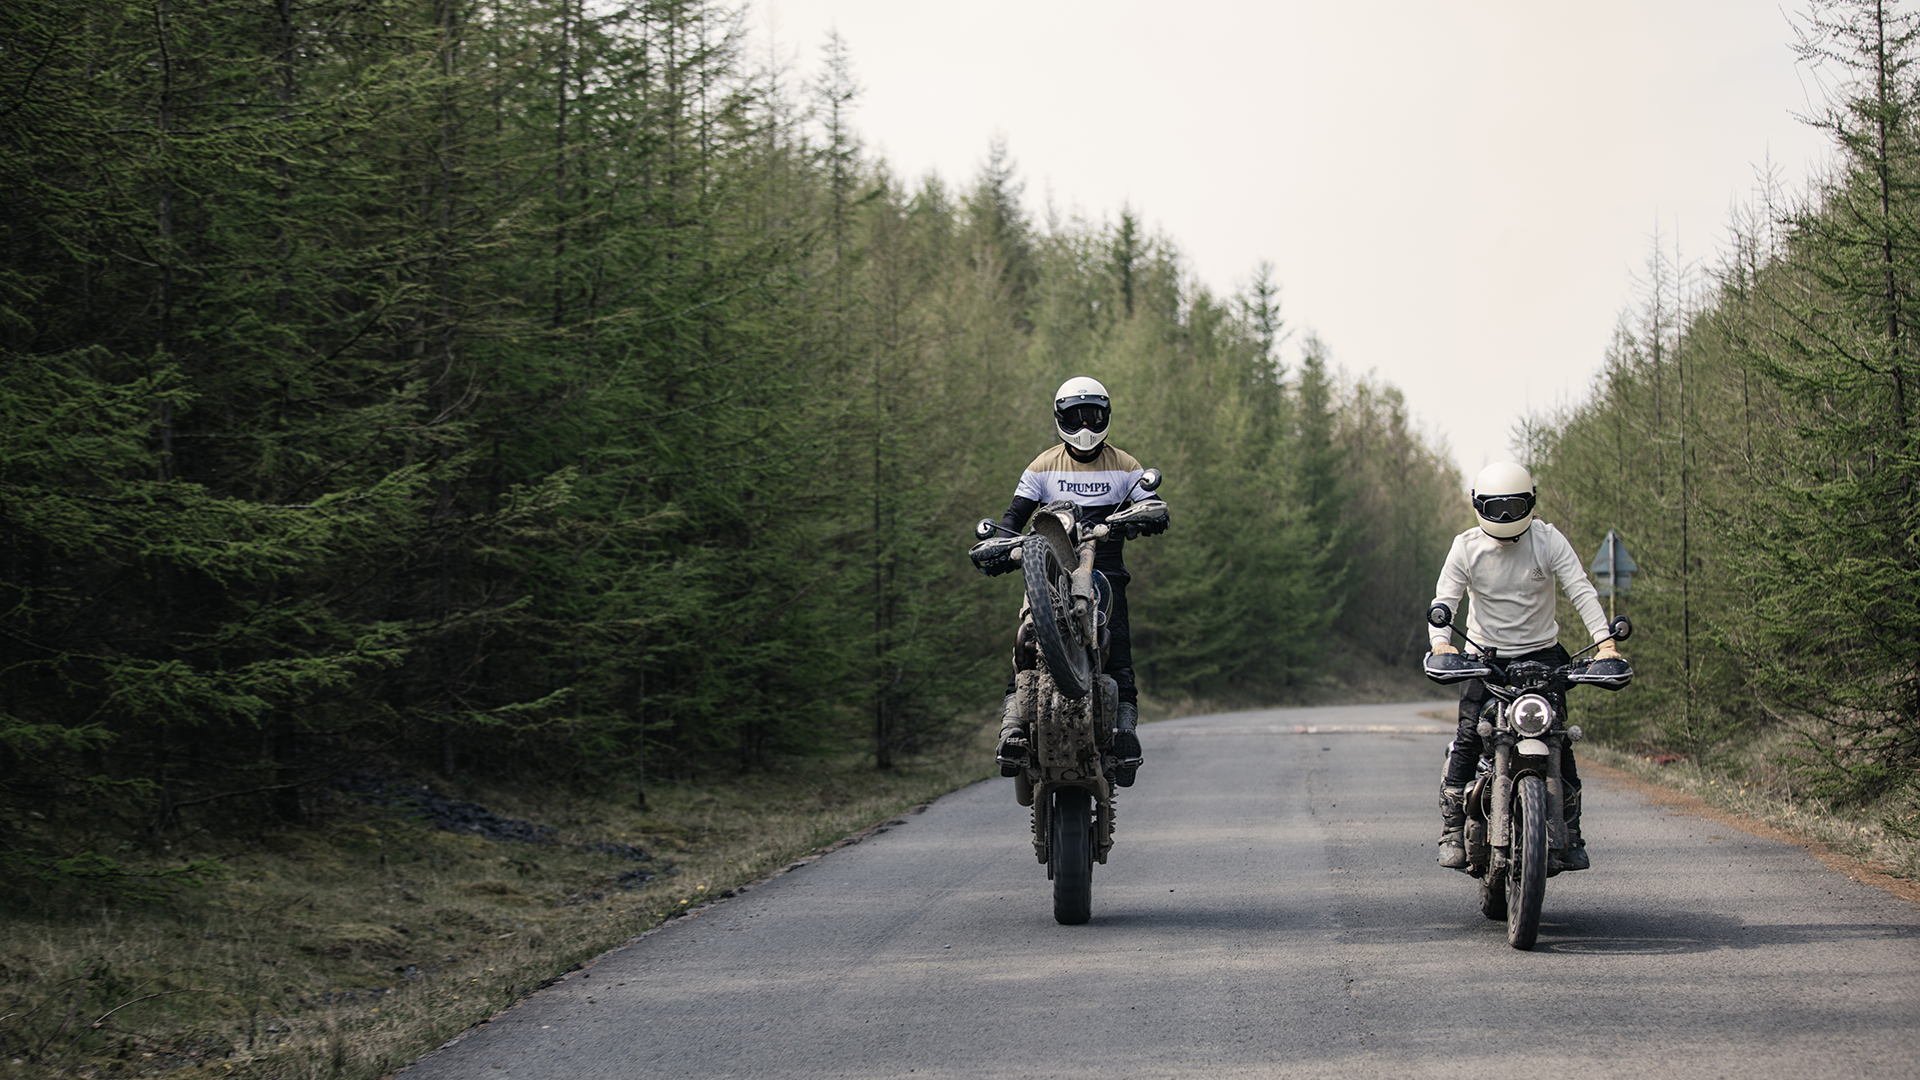 Triumph's collaboration with Bike Shed featuring two Scrambler 1200s with one doing a wheelie